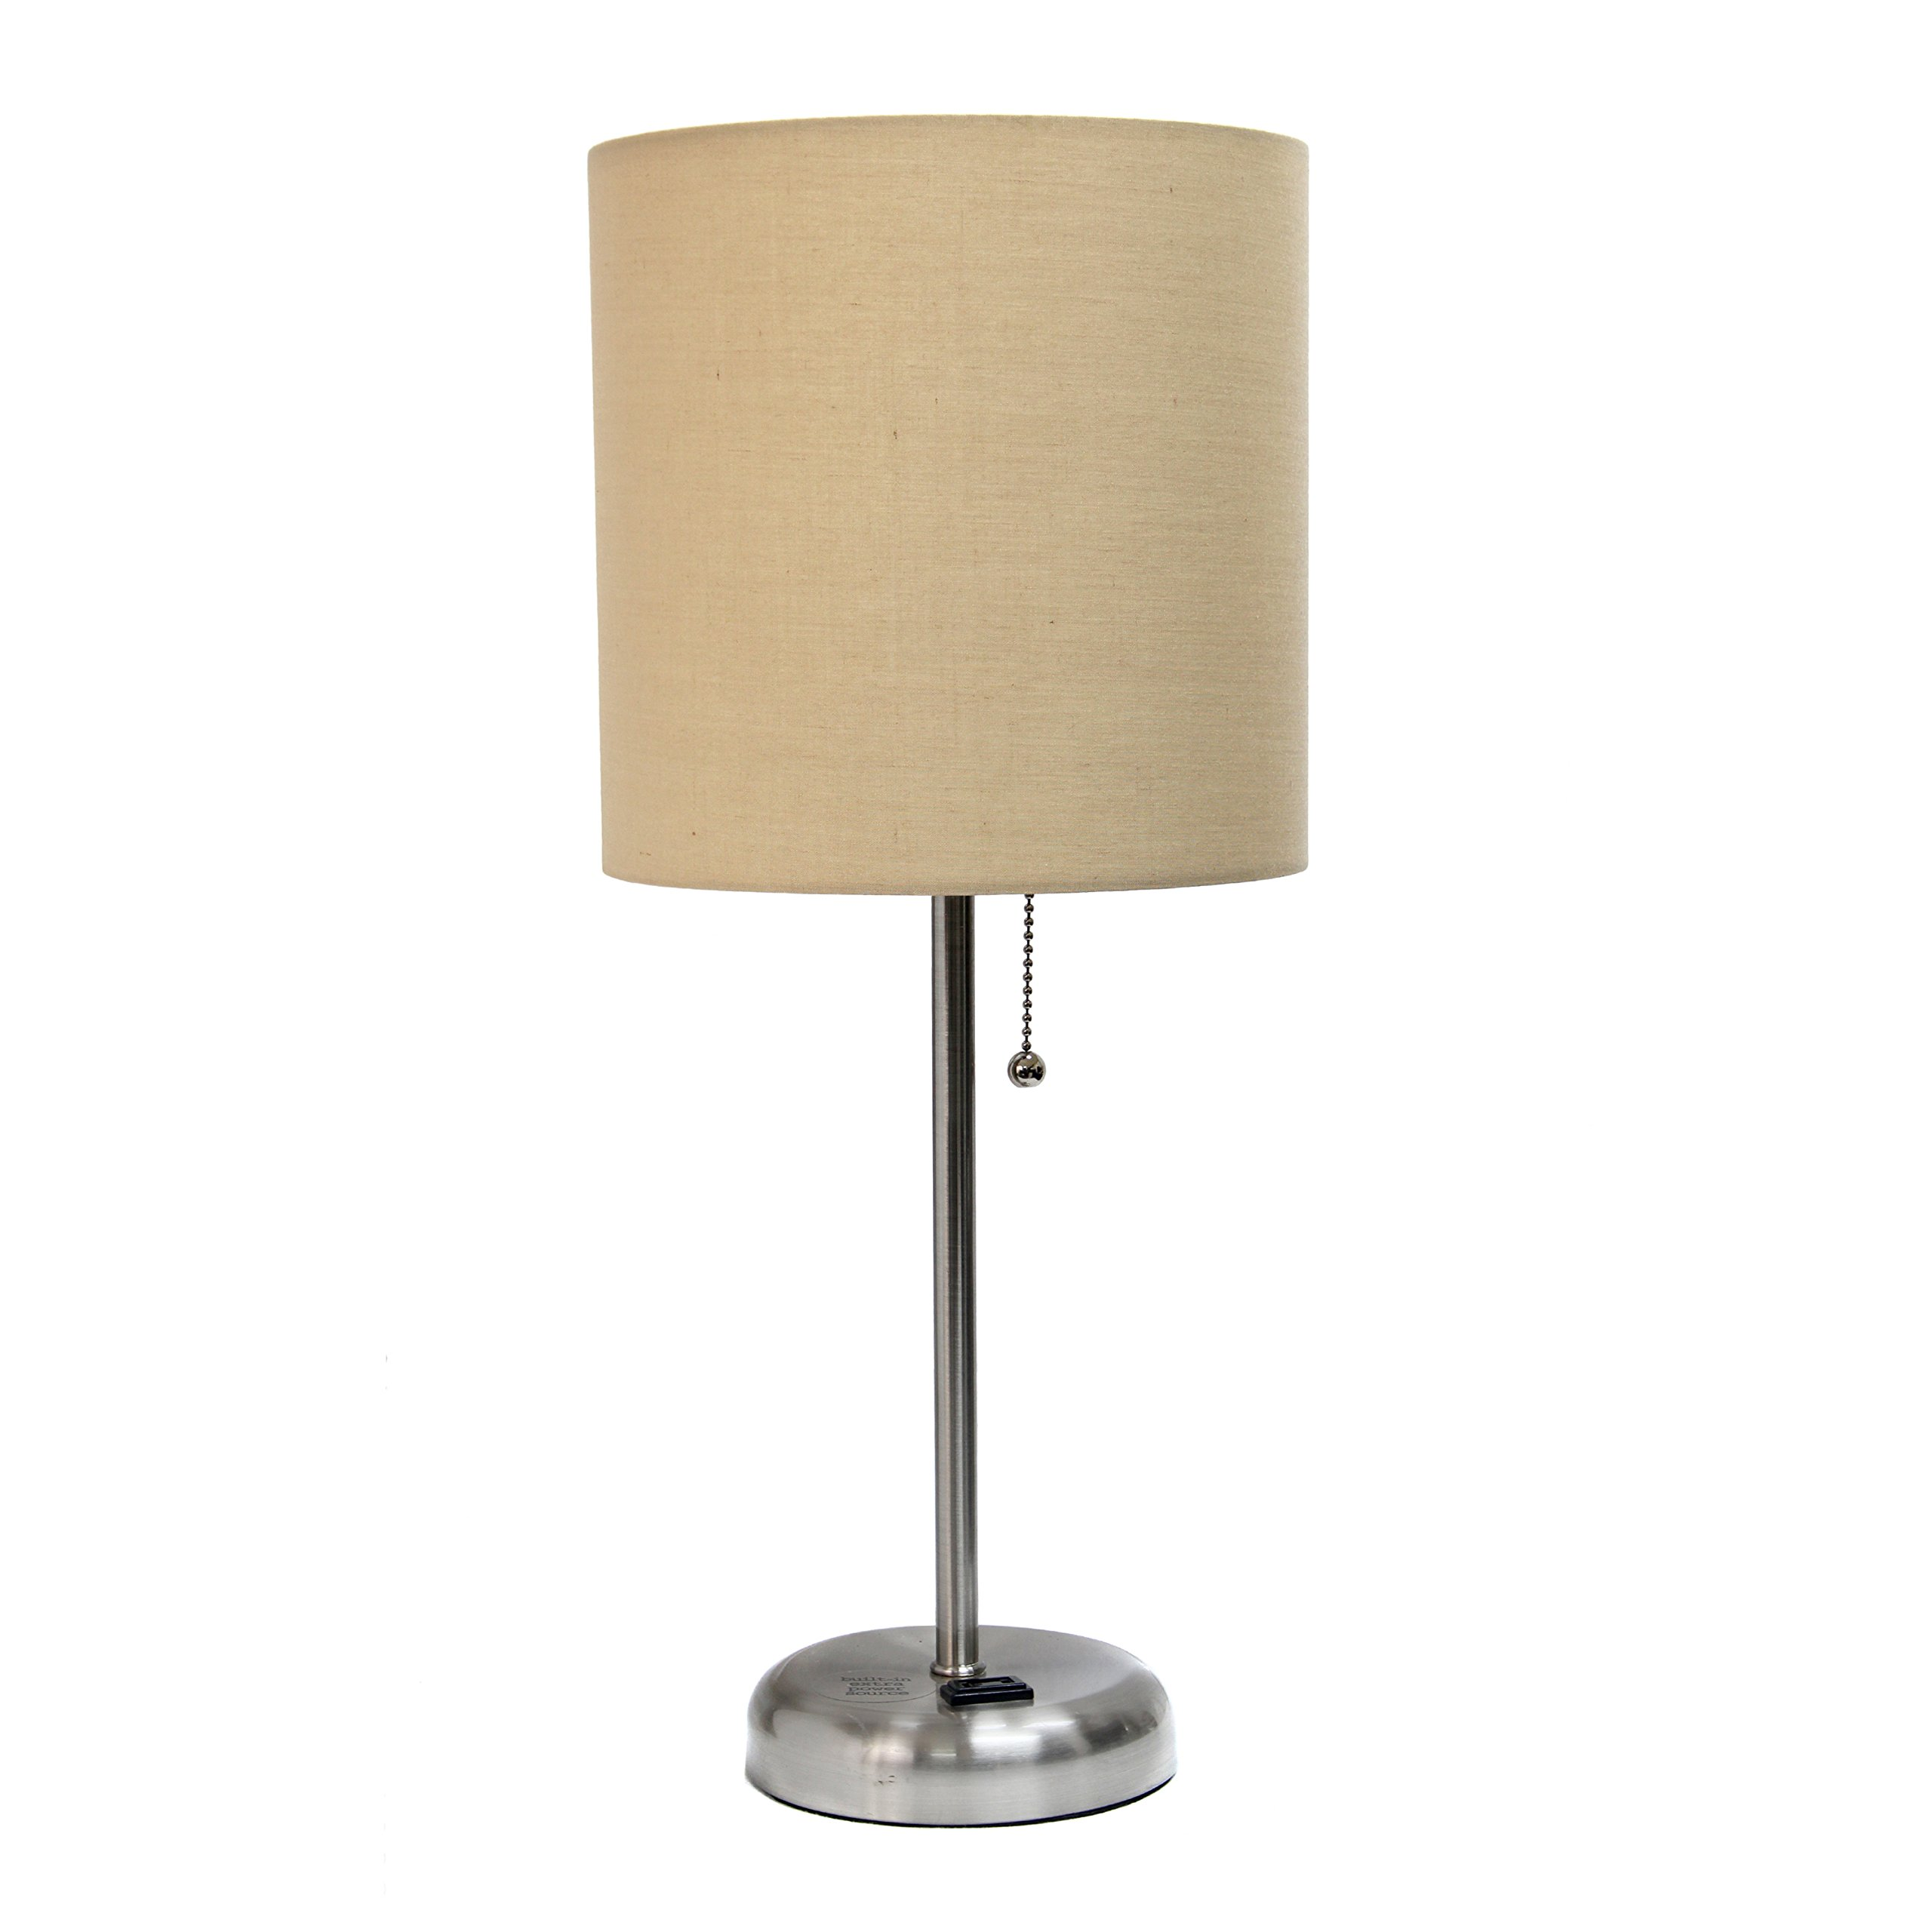 Limelights LT2024-TAN Brushed Steel Lamp with Charging Outlet and Fabric Shade, Tan